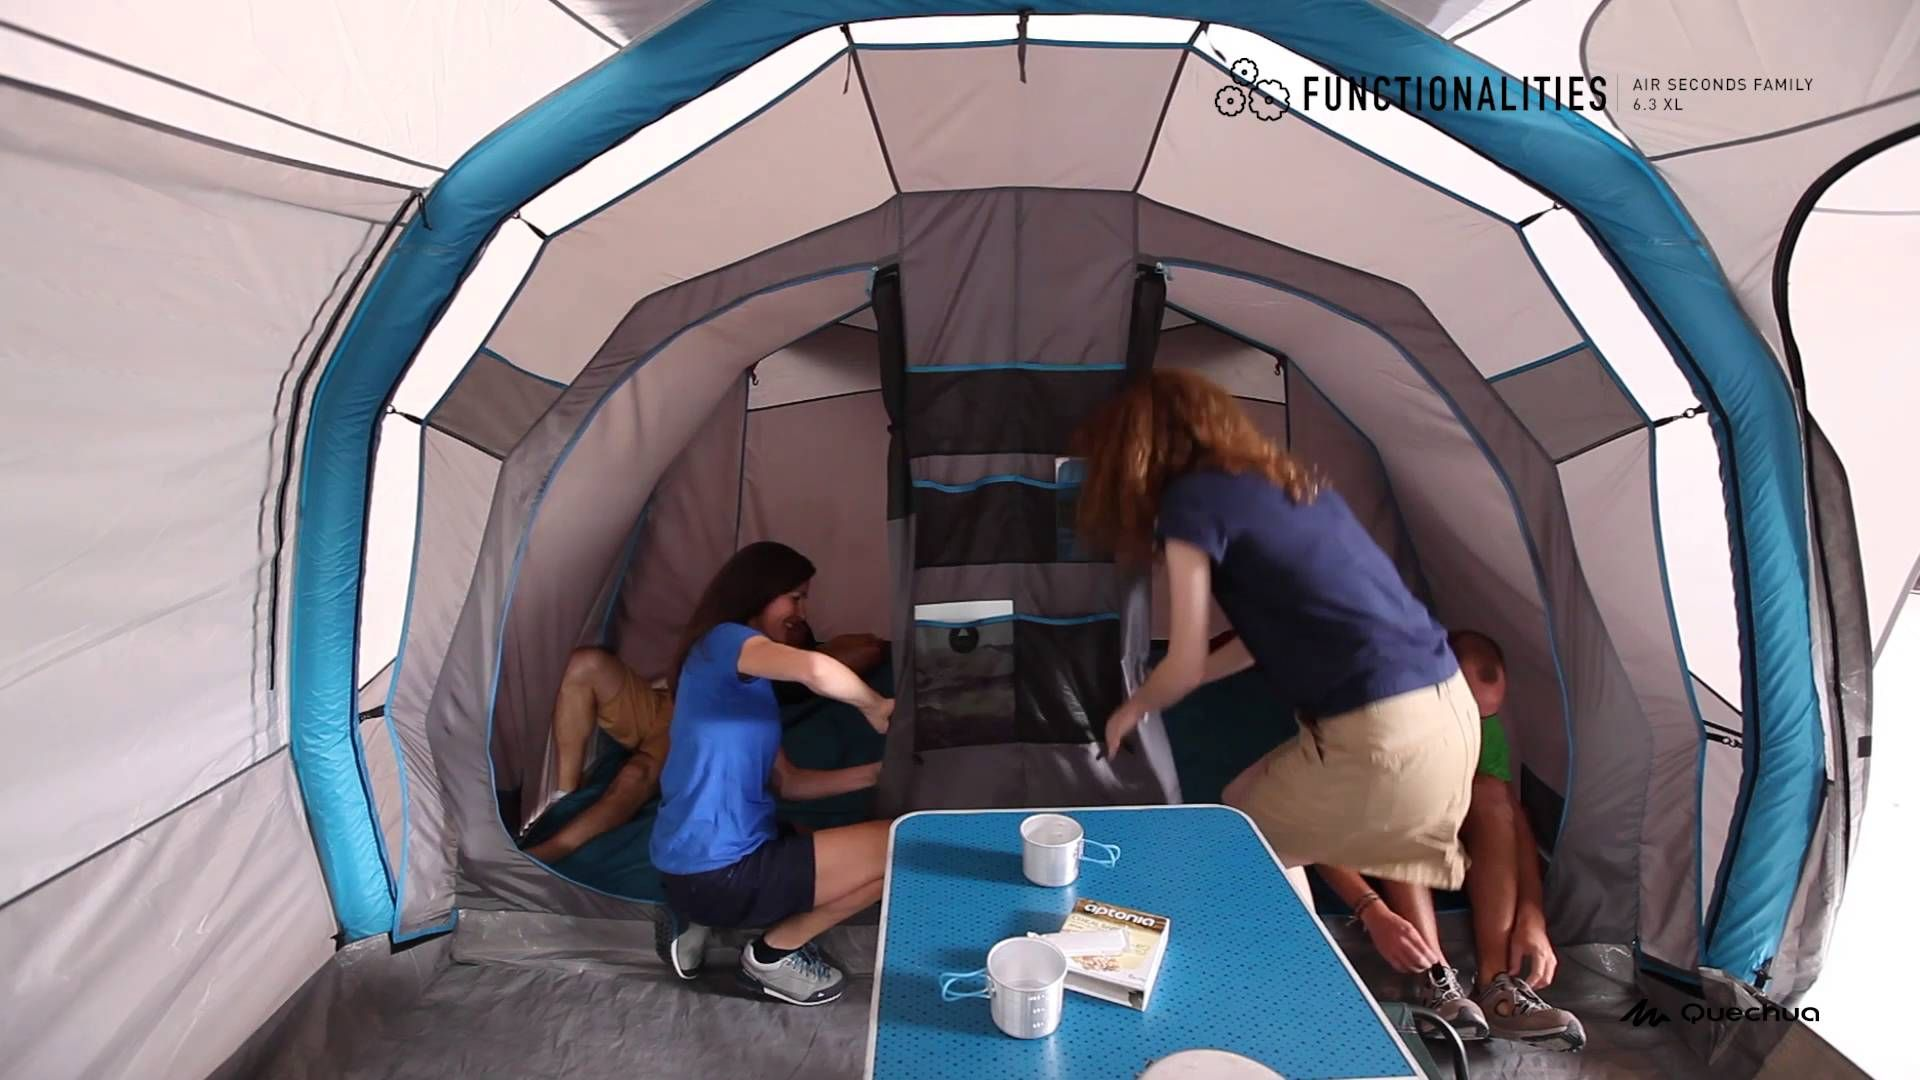 Pin By Kathy Ebert On Camping Glamping Large Tent Small House Air